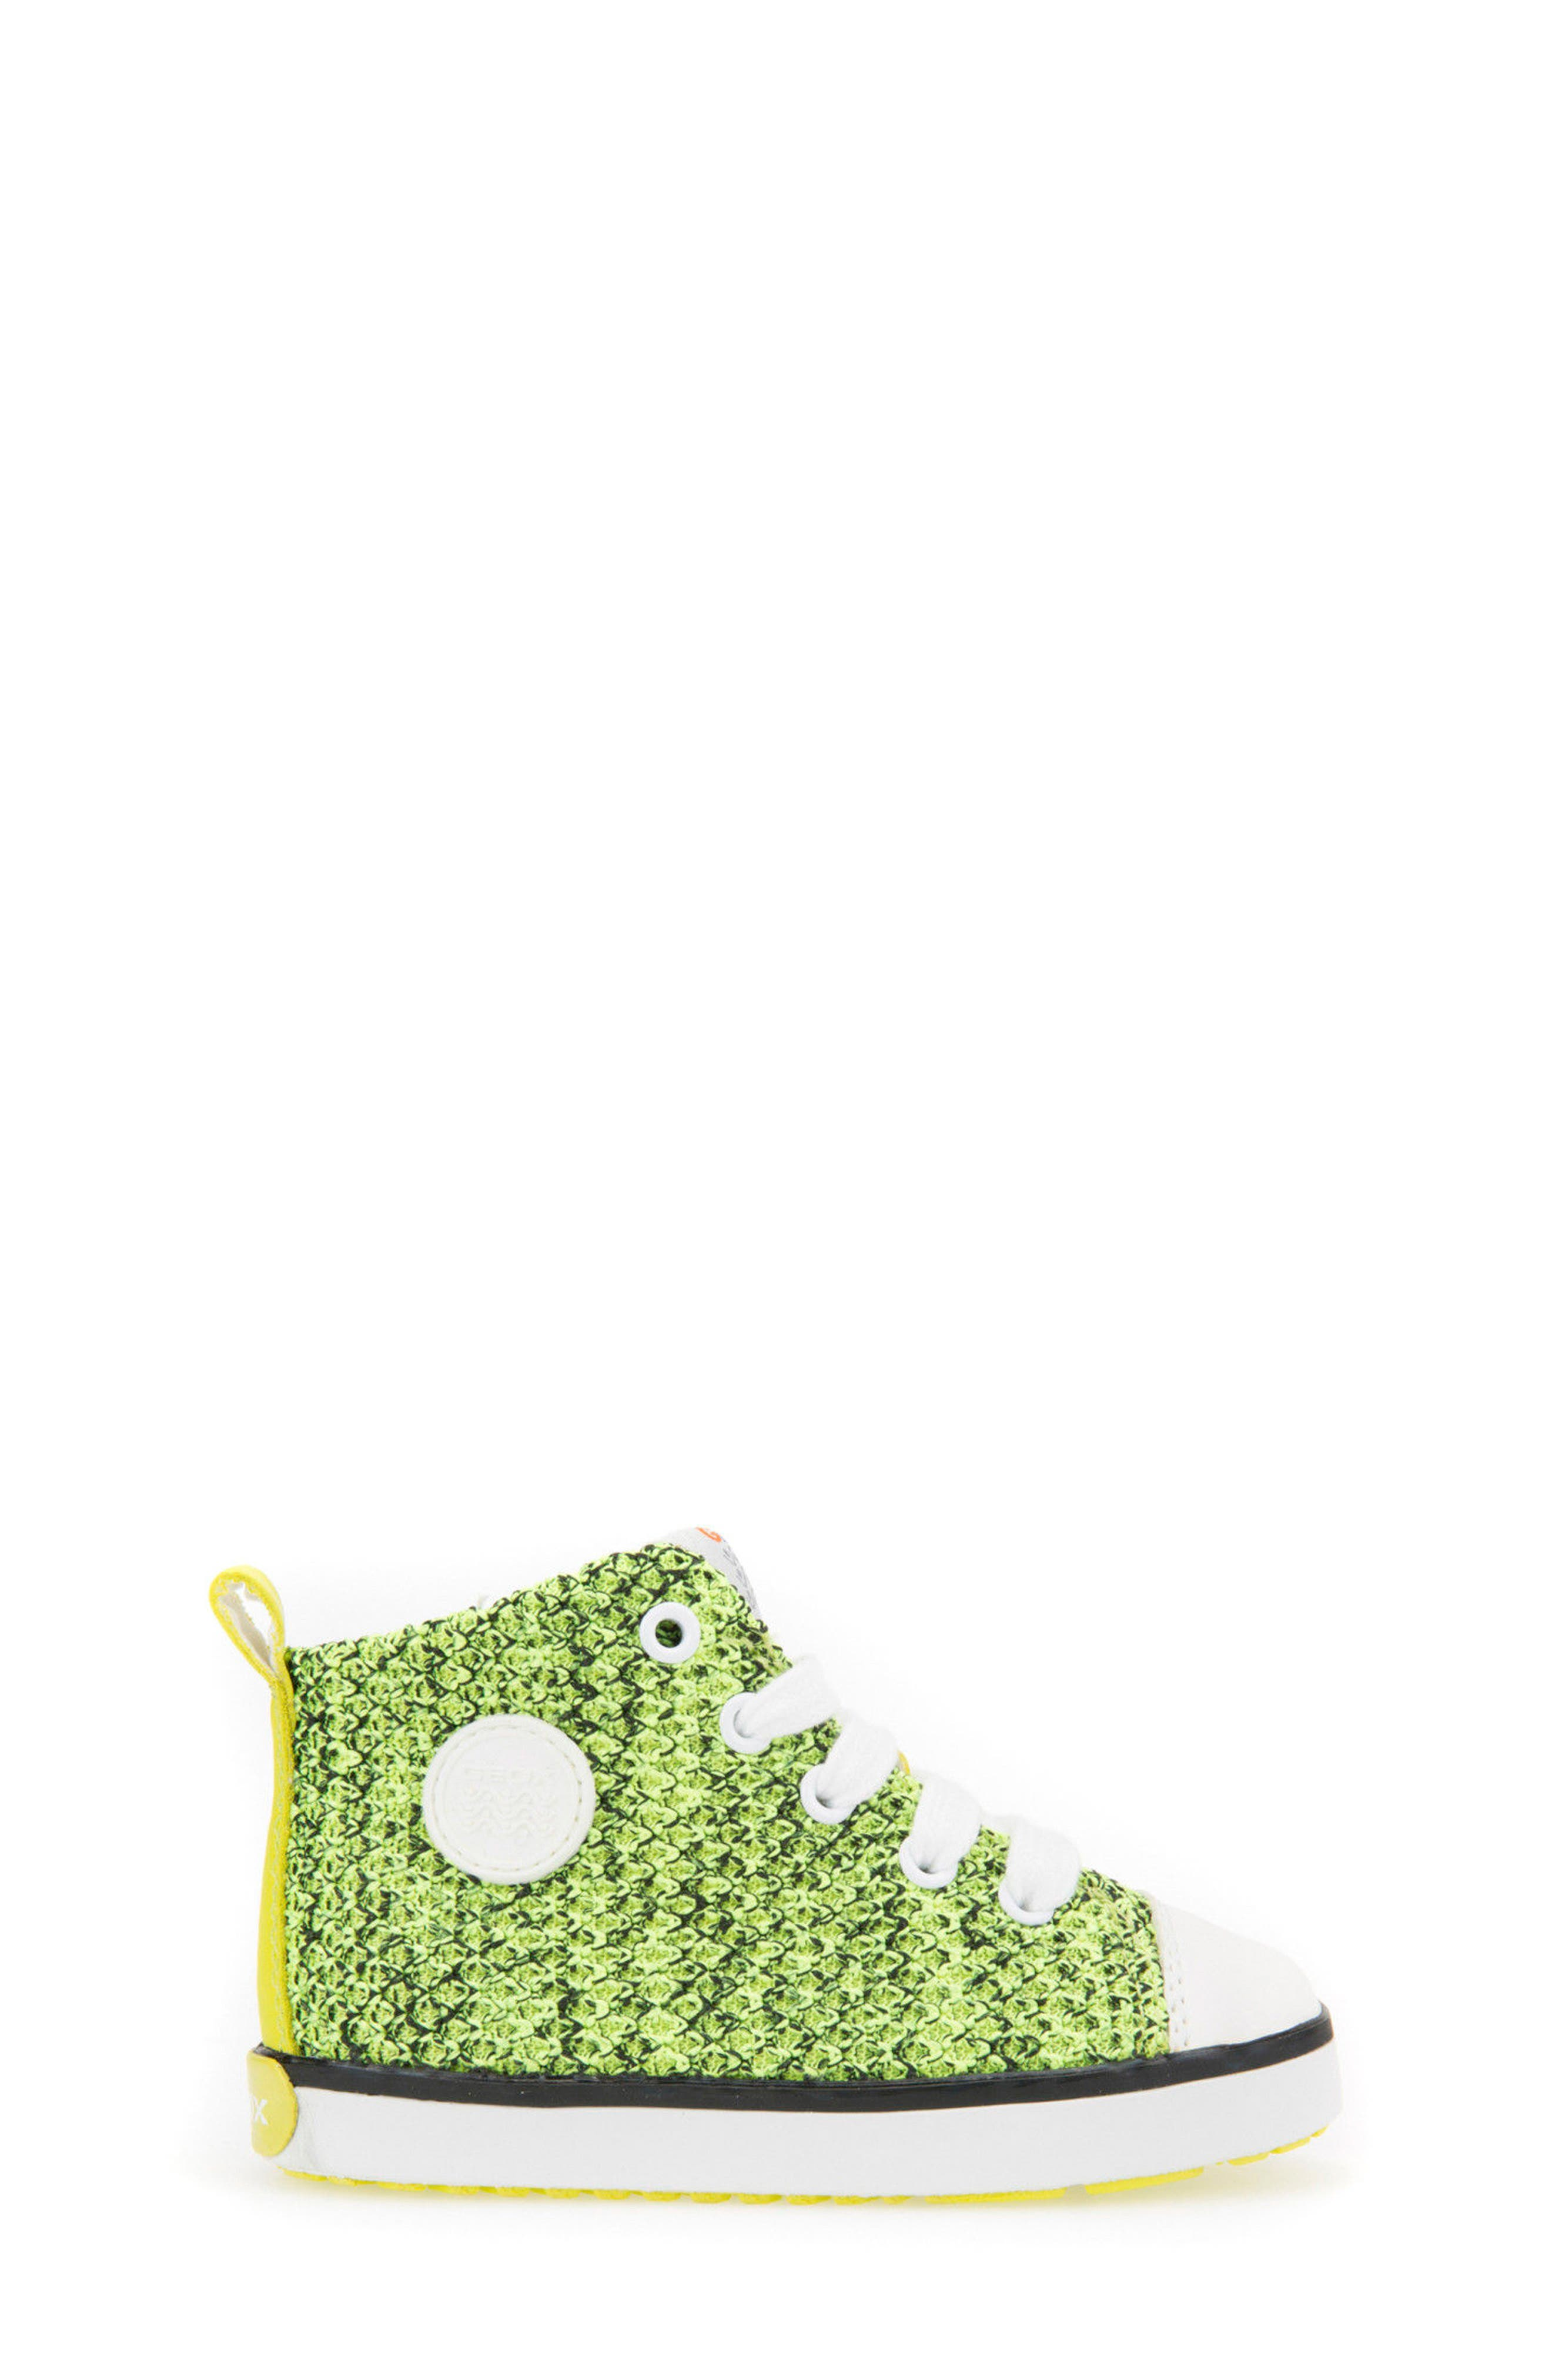 Kilwi Knit High Top Sneaker,                             Alternate thumbnail 3, color,                             LIME GREEN